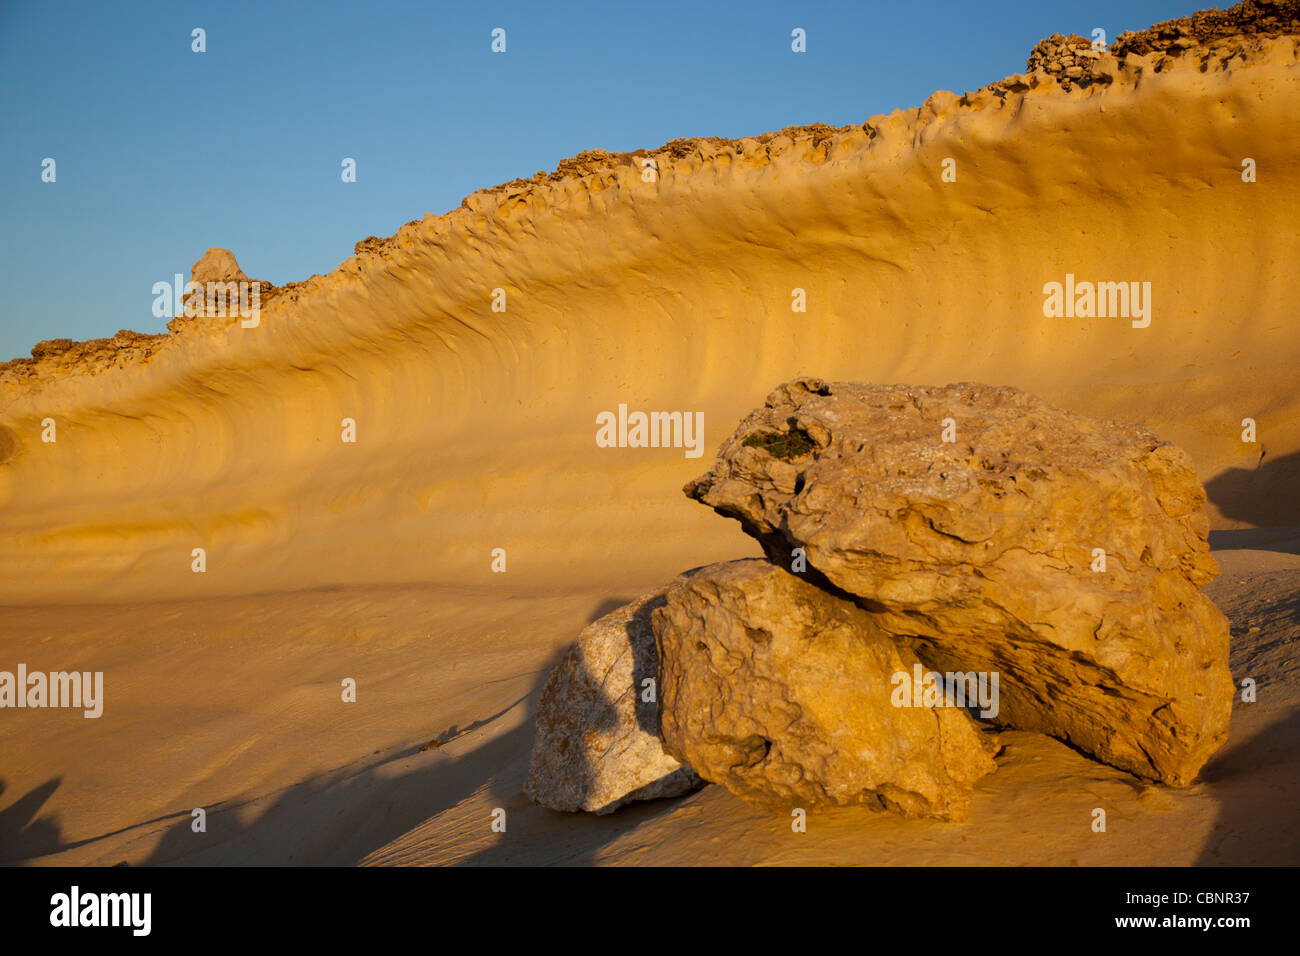 A layer of globigerina limestone formed into a concave wave by wind erosion in the northwestern coast of Gozo, Malta. - Stock Image